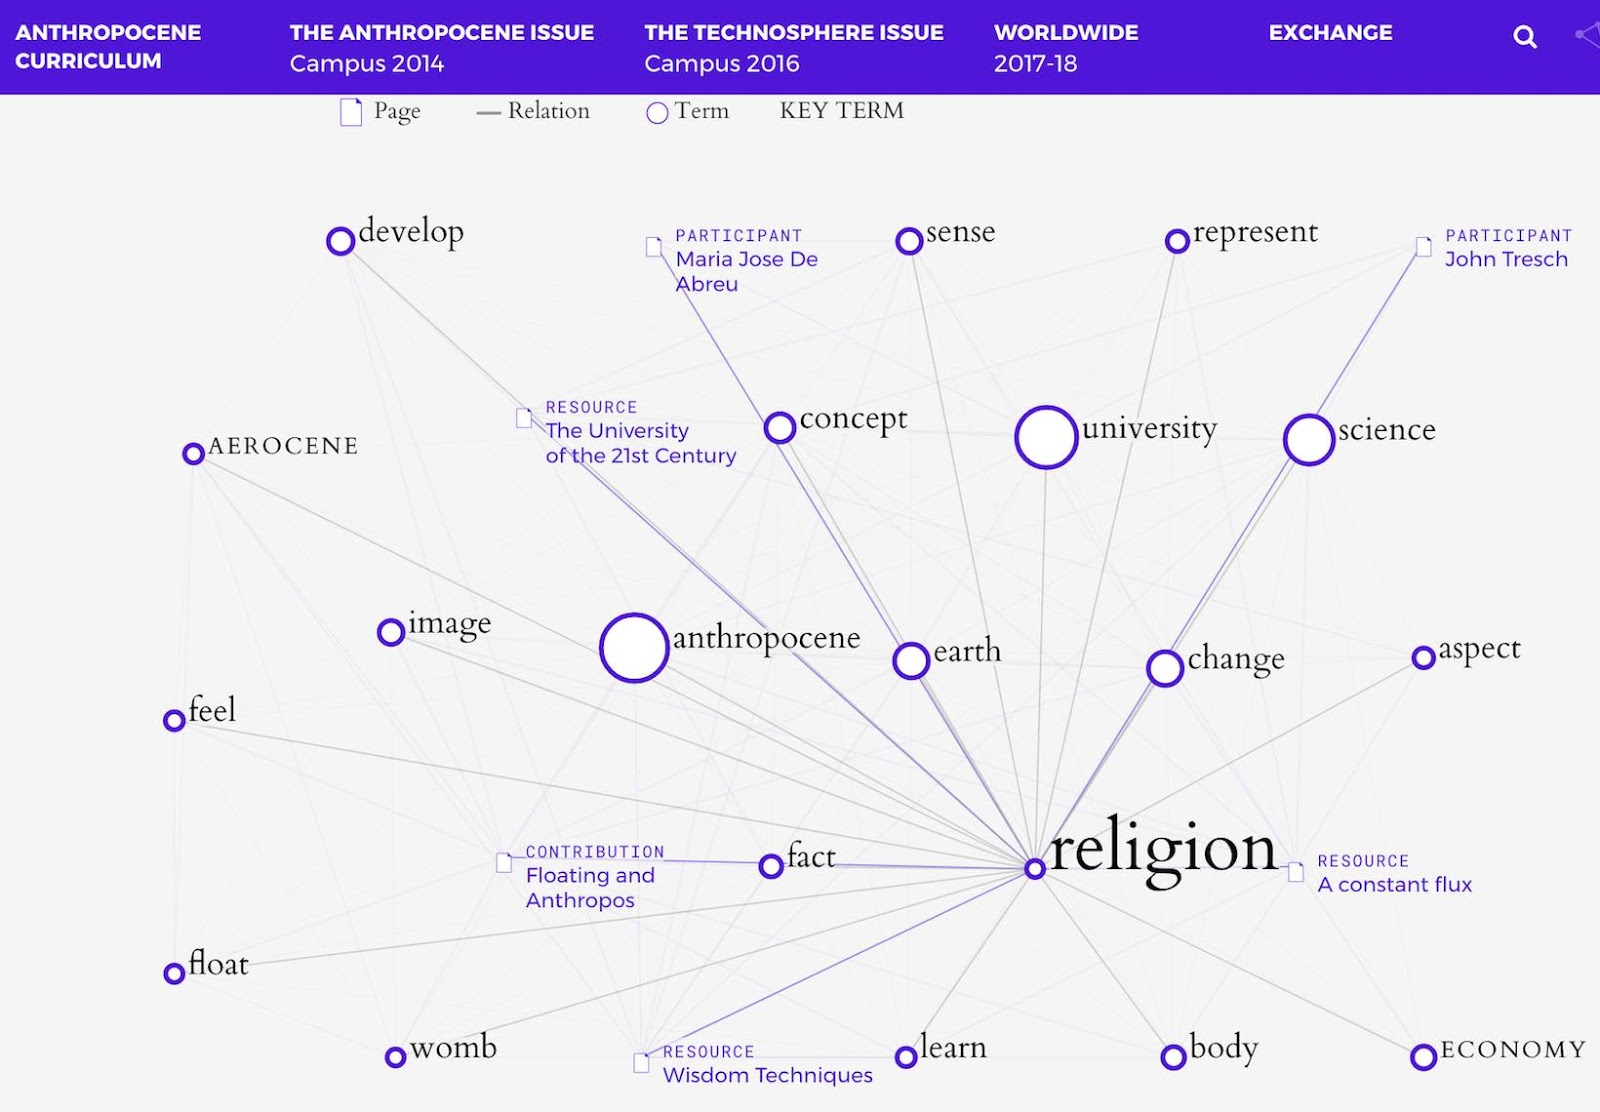 most links are circumstantial and there s no line of relation with anthropocene at all is religion so obviously off the map